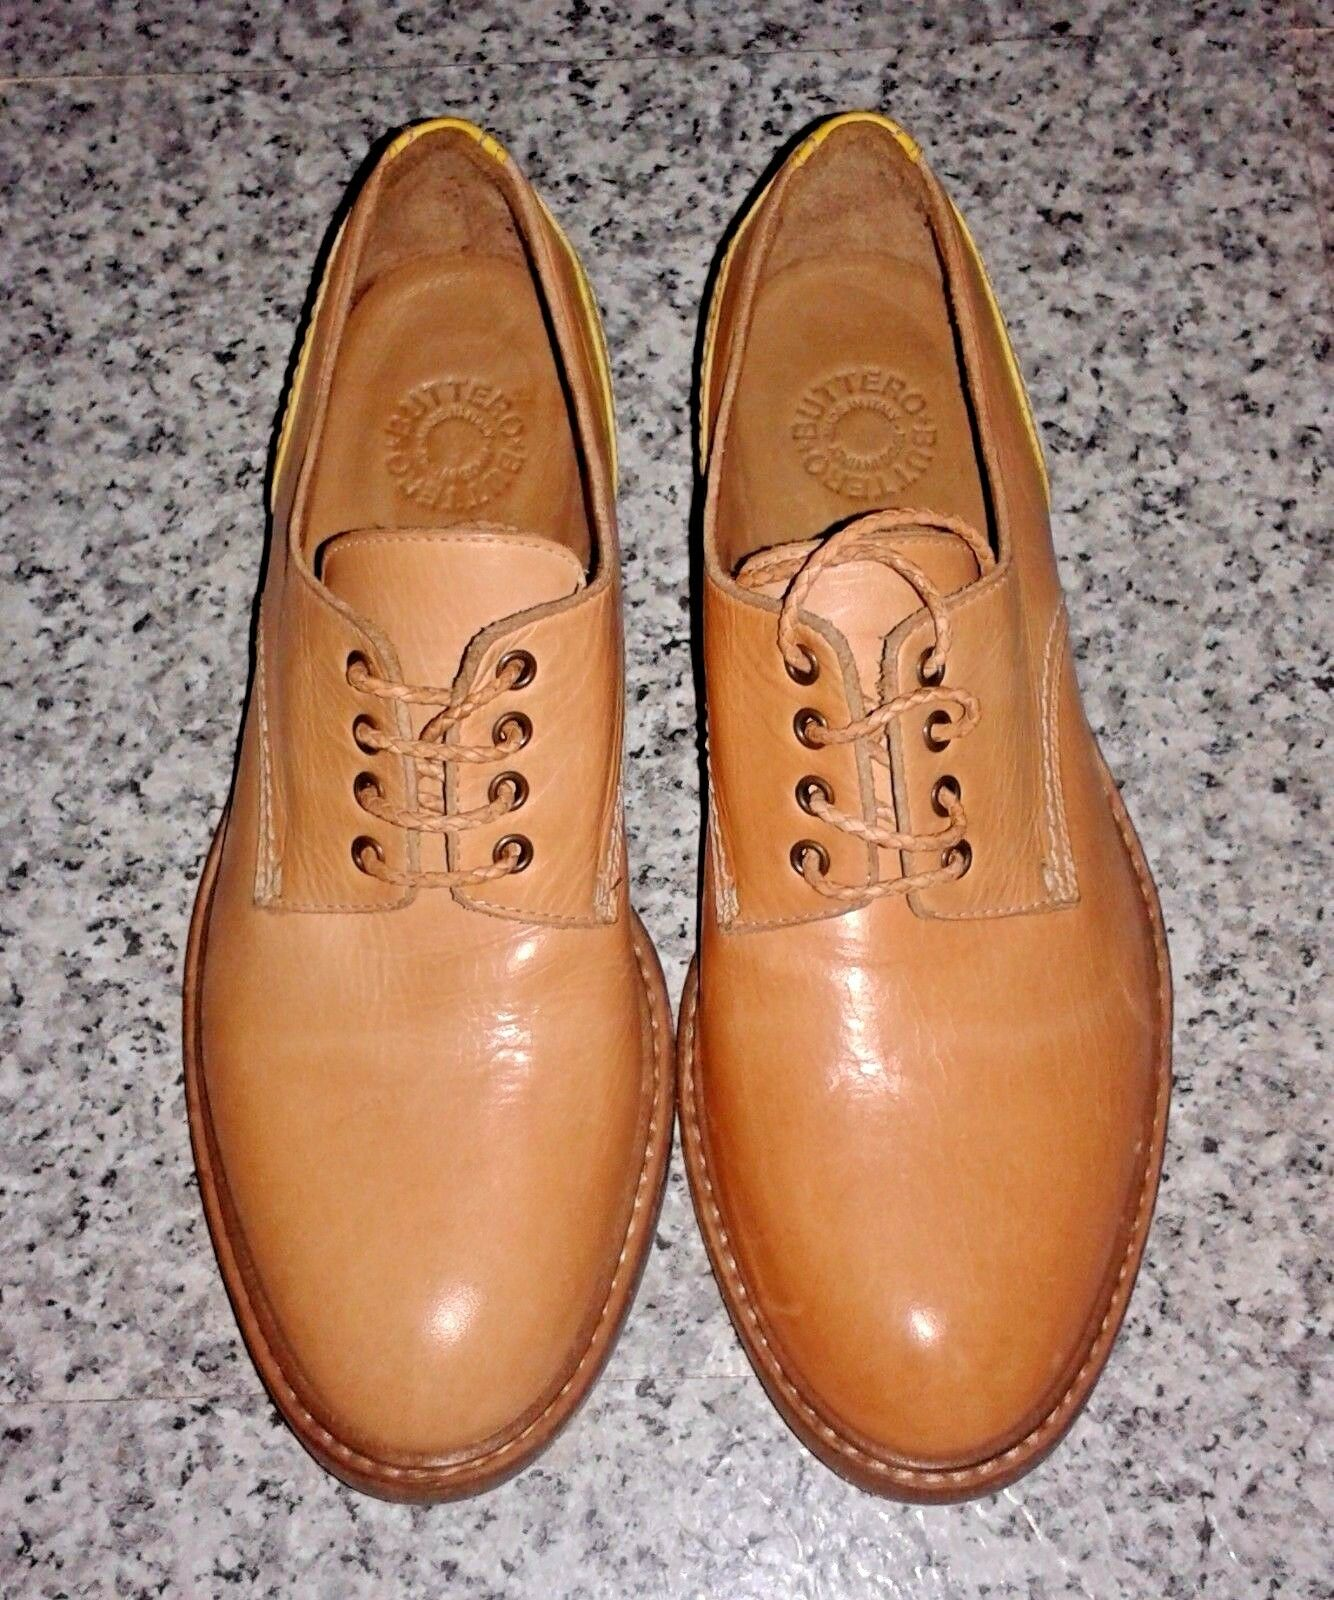 BUTTERO B4840 Leather Limited Edition Tan Yellow Lace Up shoes